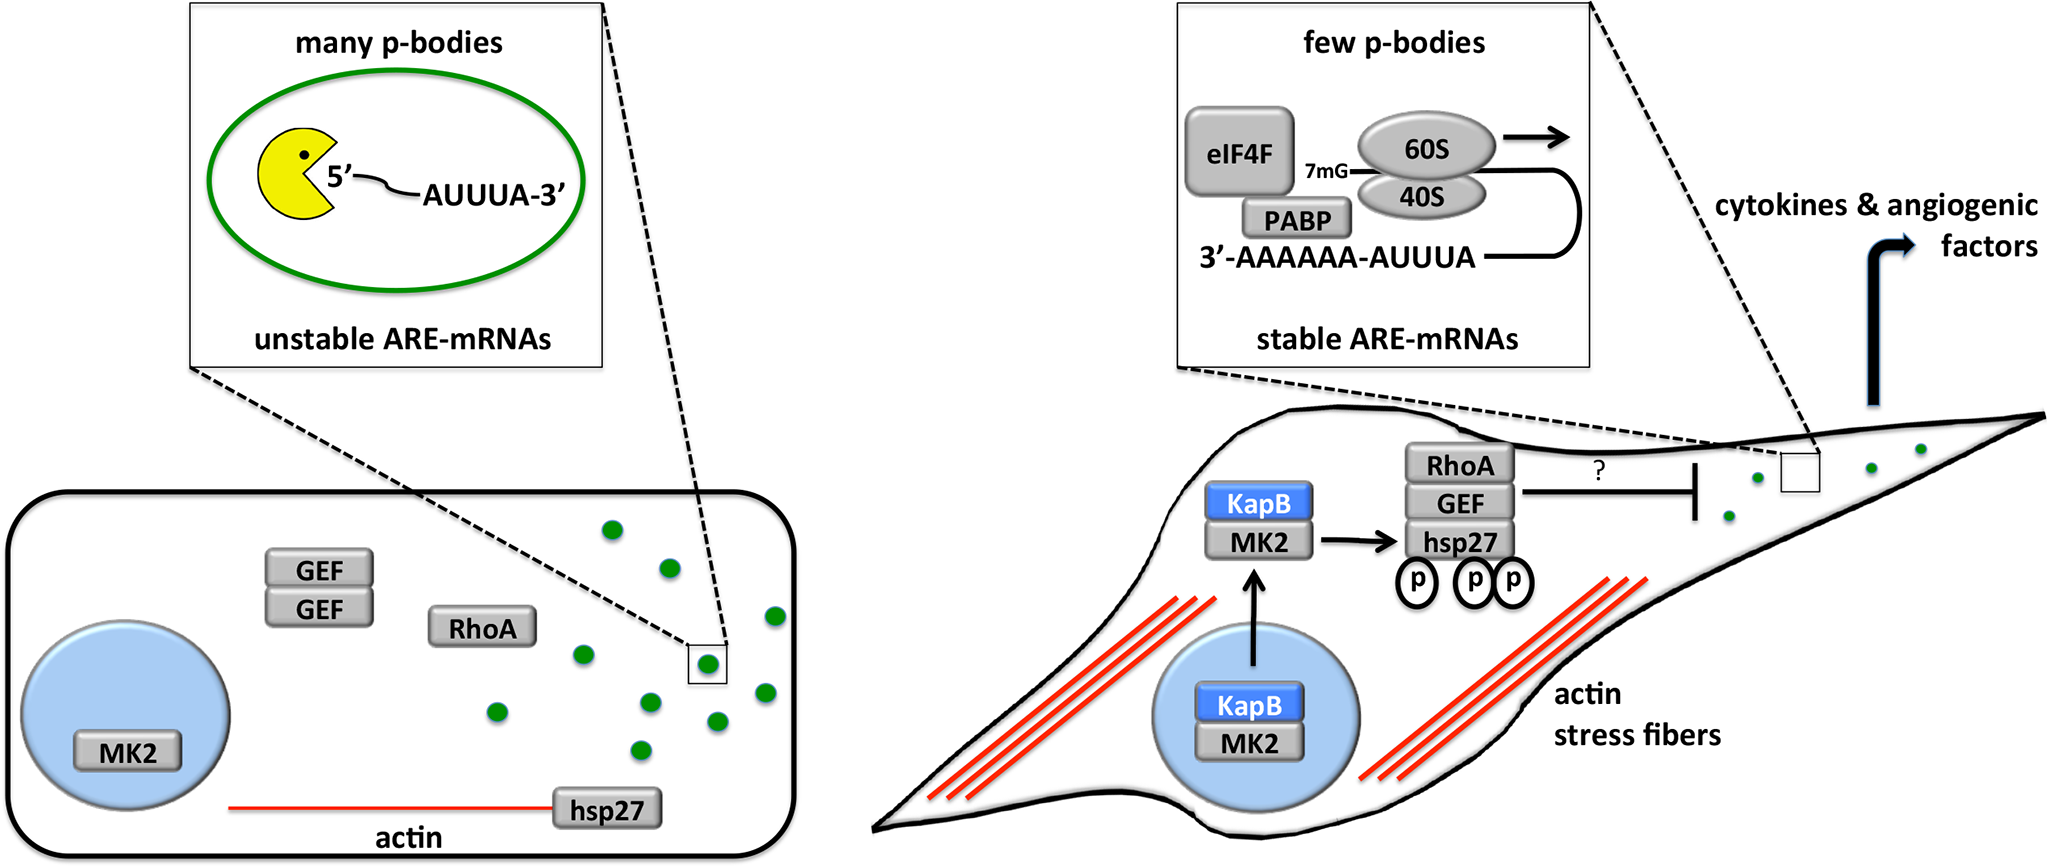 Model describing the effects of KapB in altering endothelial cell cytoskeleton and reprogramming gene expression by disrupting P-bodies and stabilizing ARE-mRNAs.